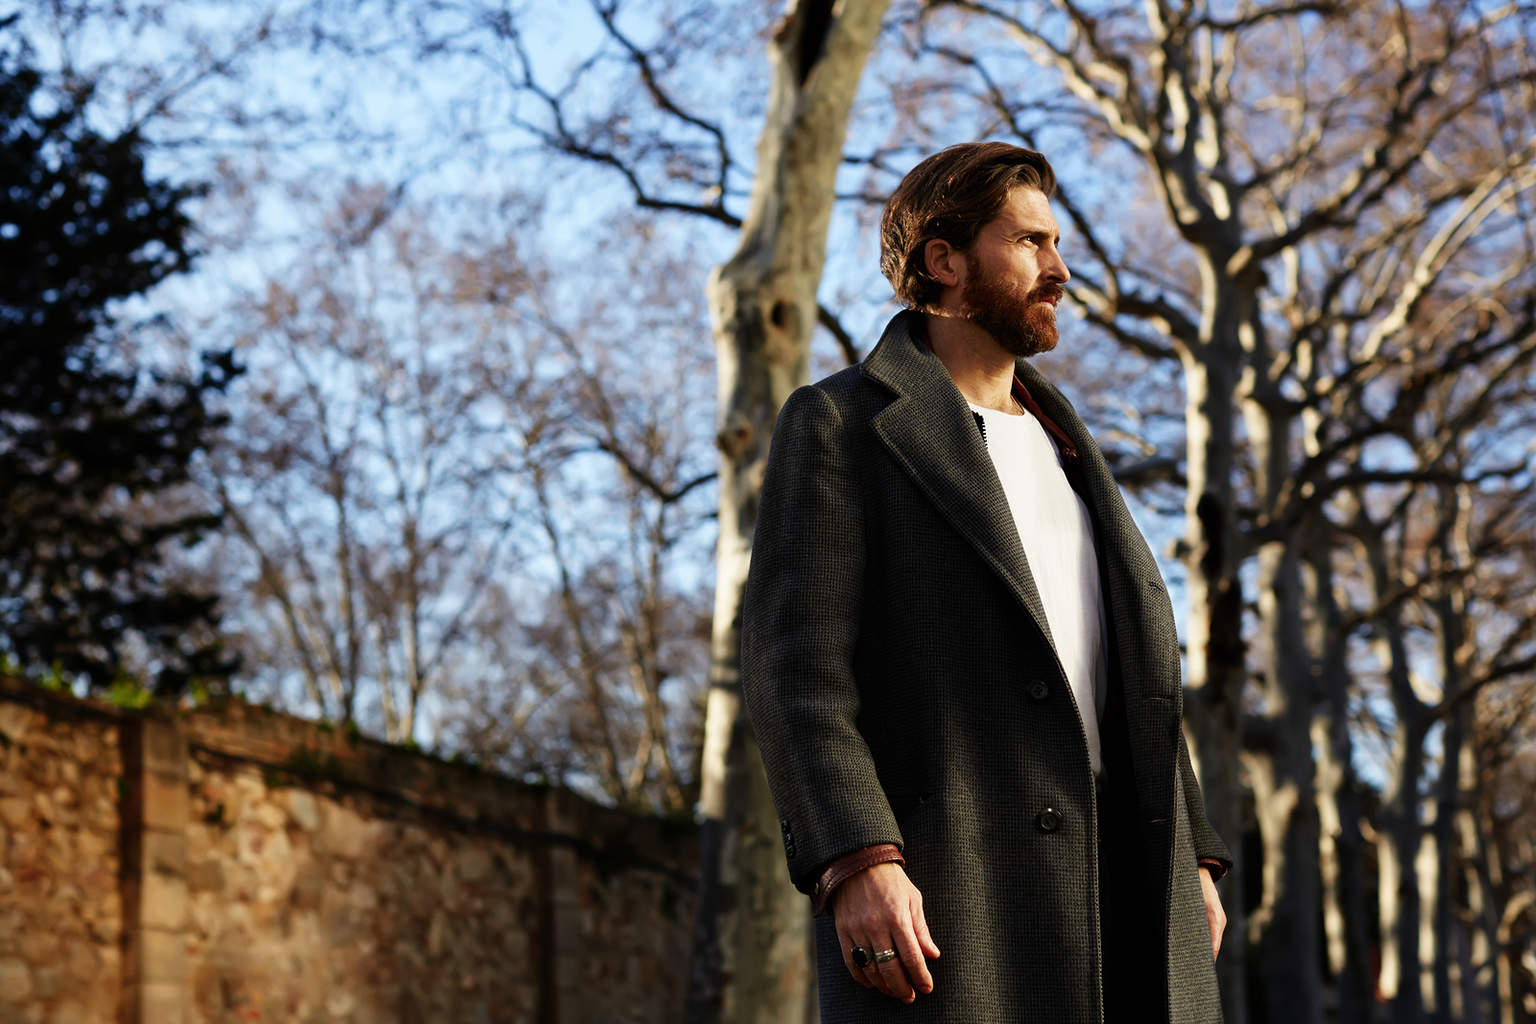 Portrait of well dressed man with beard posing outdoors looking